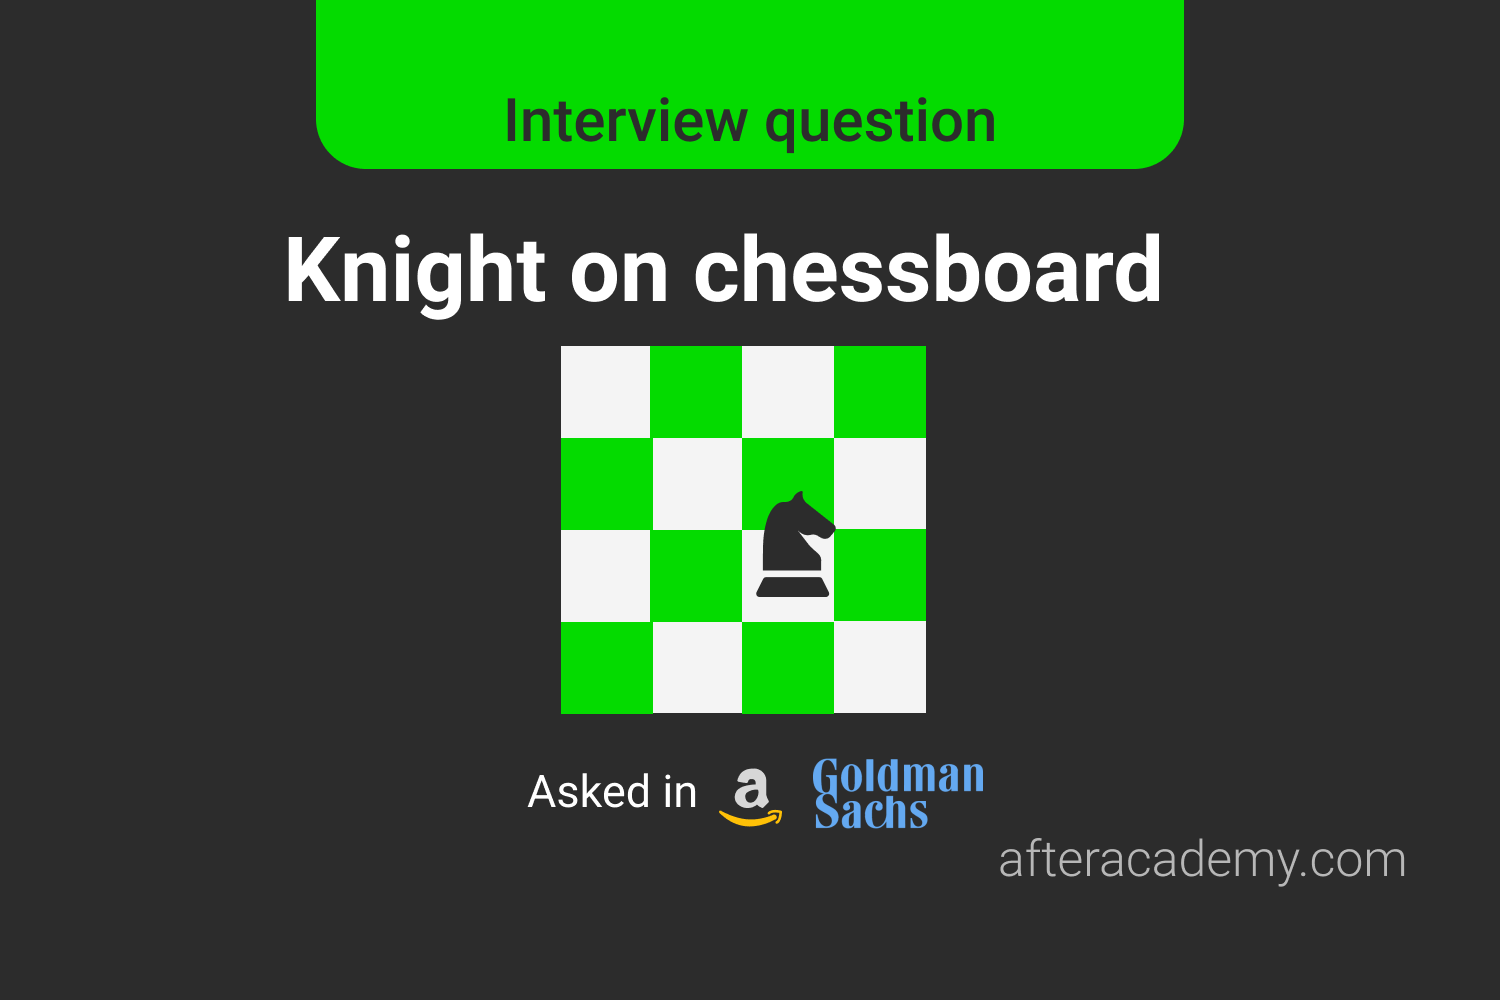 Knight on chessboard